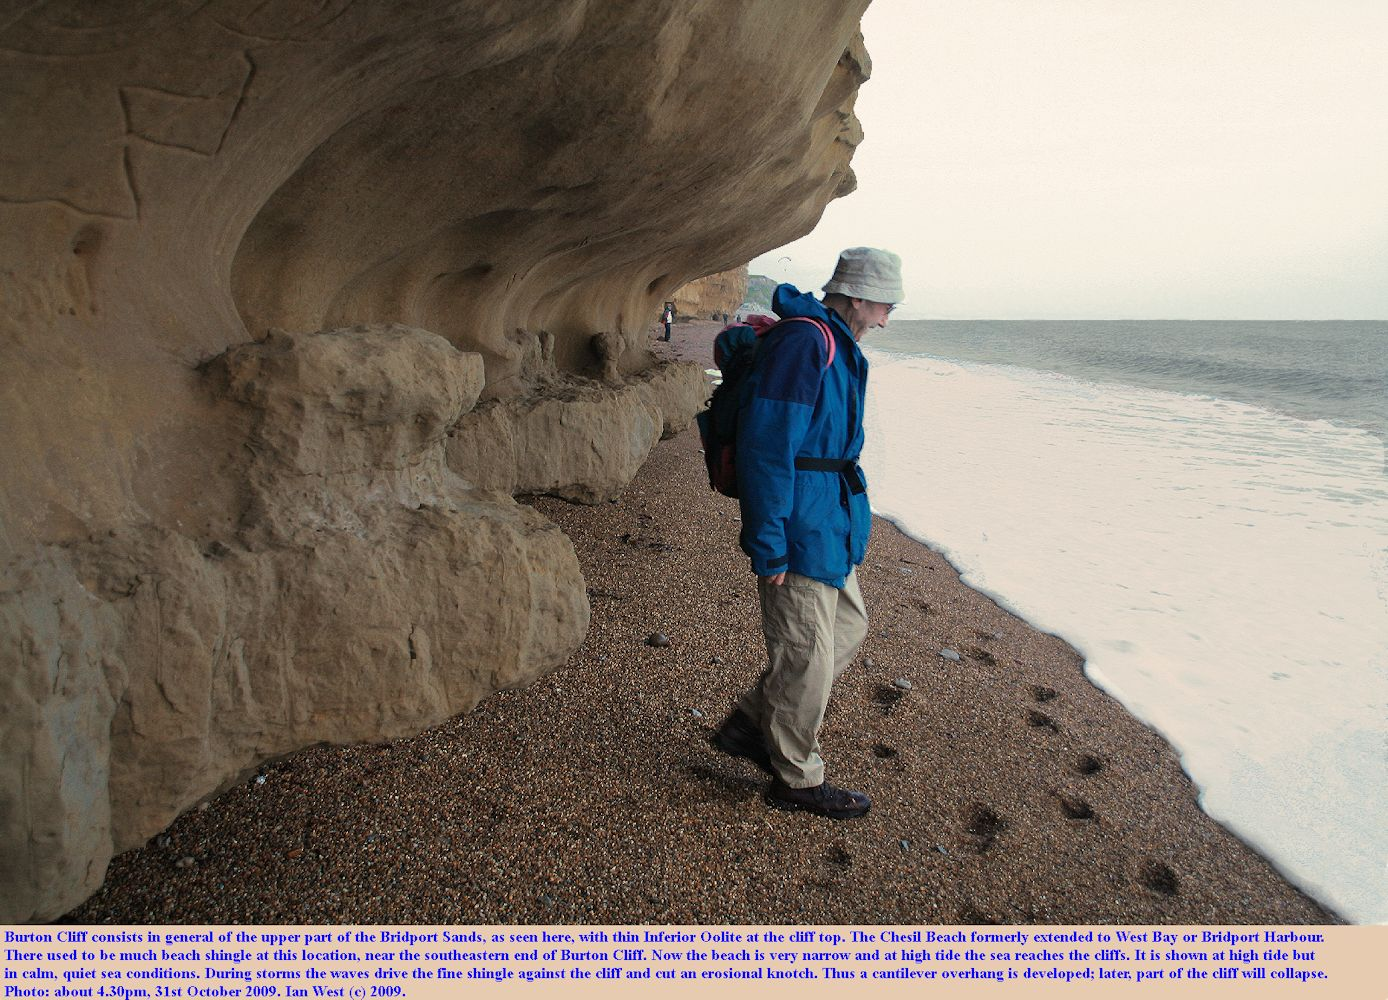 Loss of beach material has resulted in wave action cutting an  overhang or cantilever at the base of the cliff of Bridport Sands at Burton Bradstock, Dorset, as seen 31st October 2009